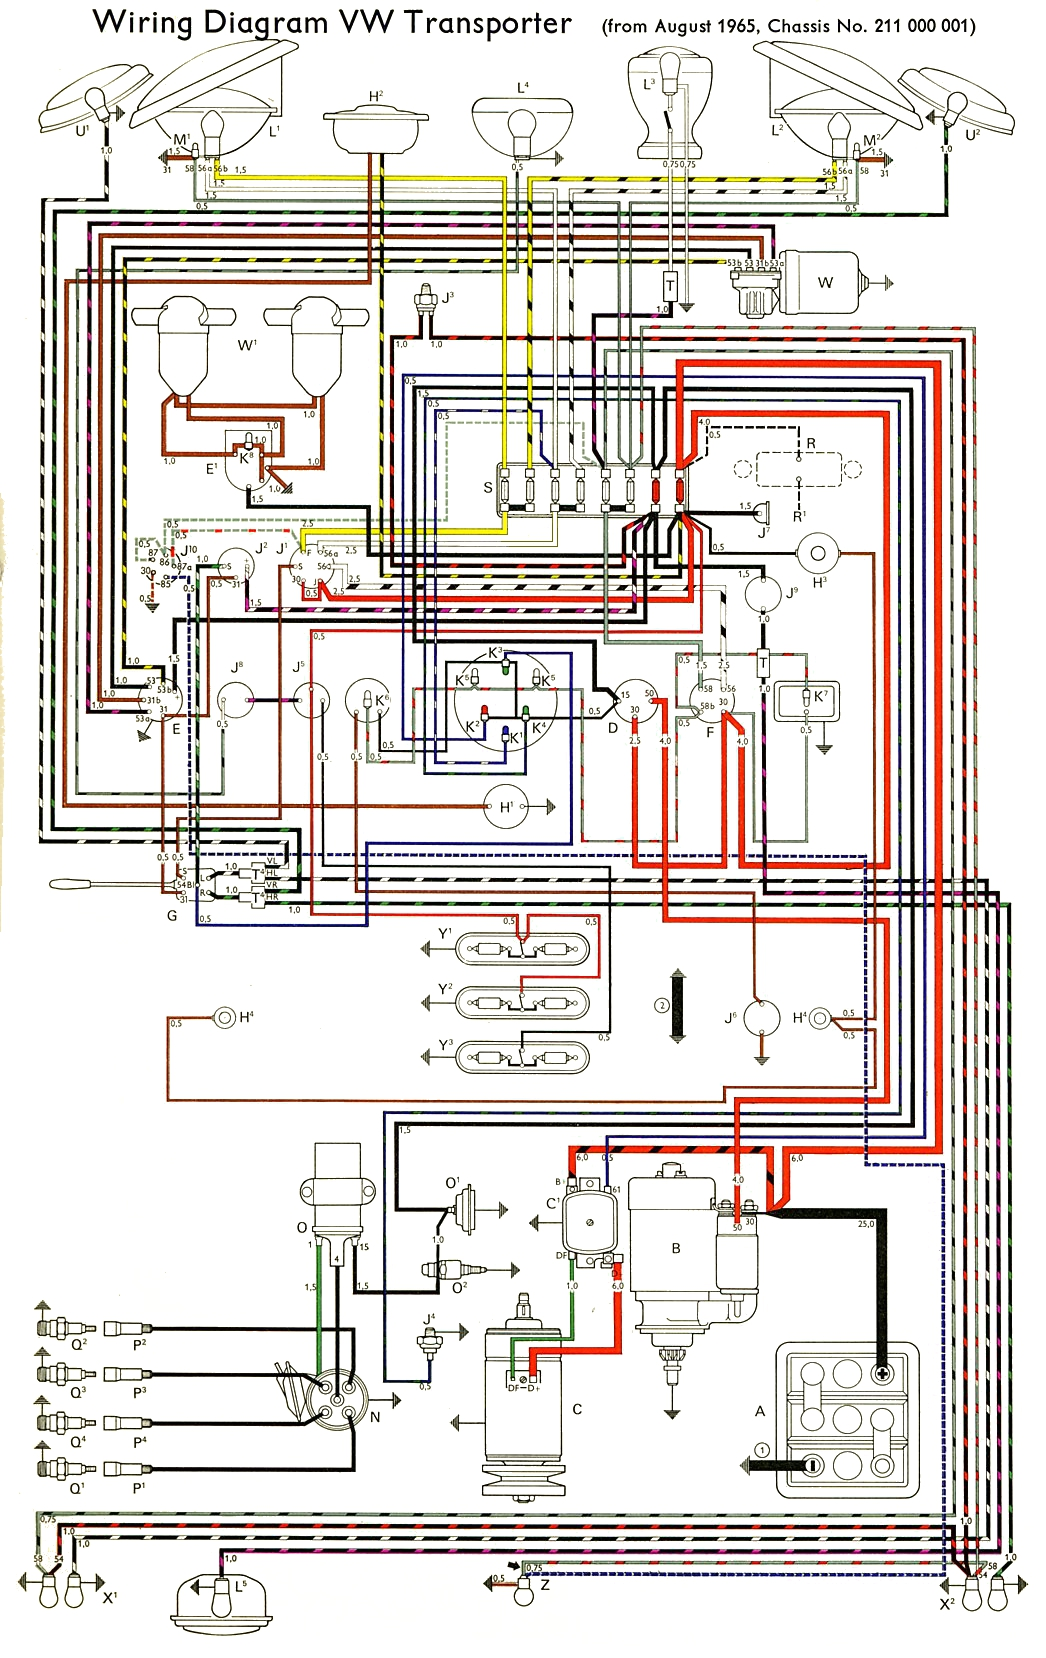 bus_66 vw t5 wiring diagram t8 wiring diagram \u2022 free wiring diagrams t5 transmission wiring diagram at crackthecode.co